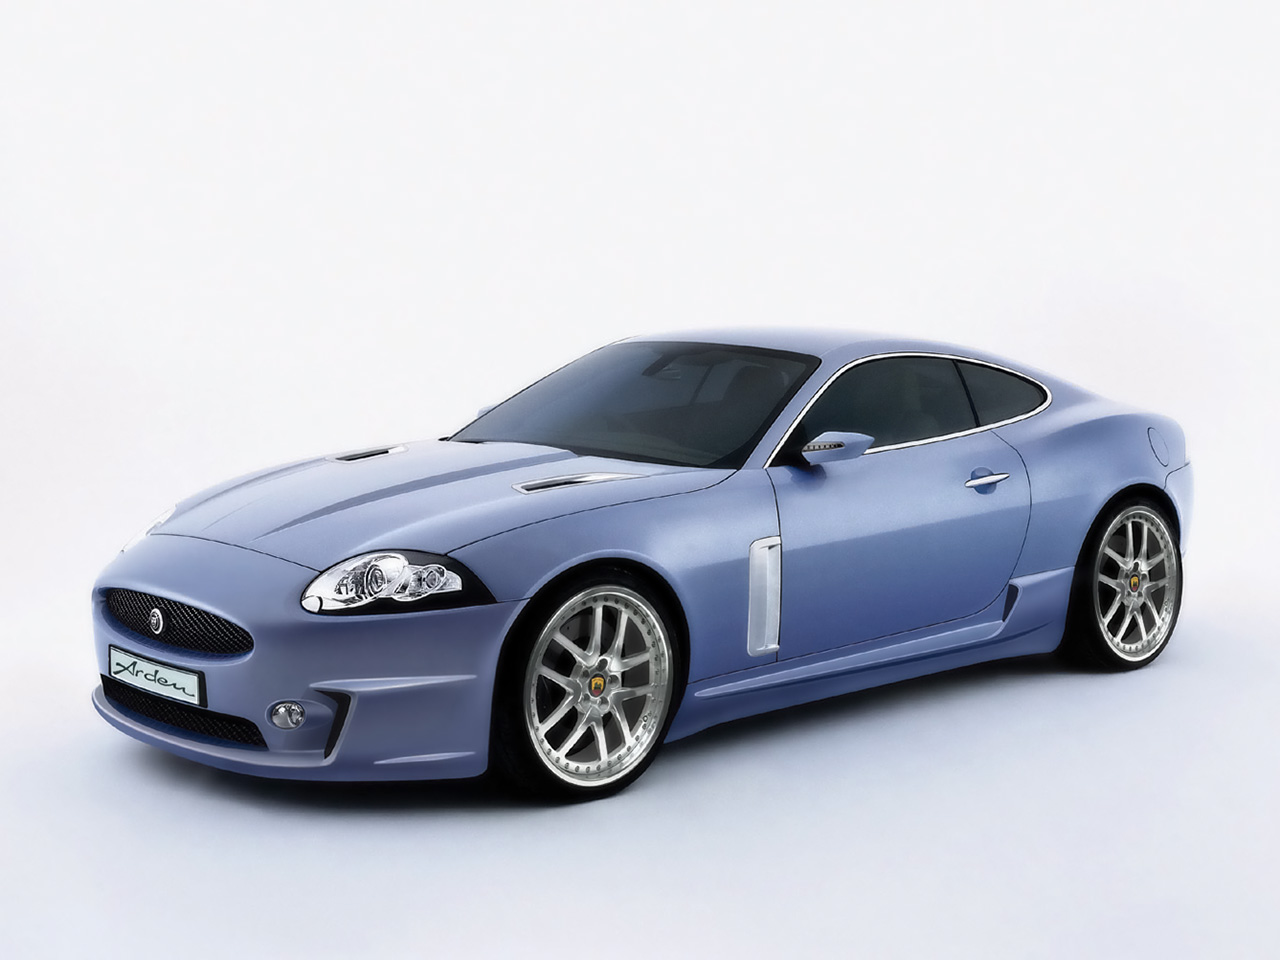 Jaguar Xk-series #8